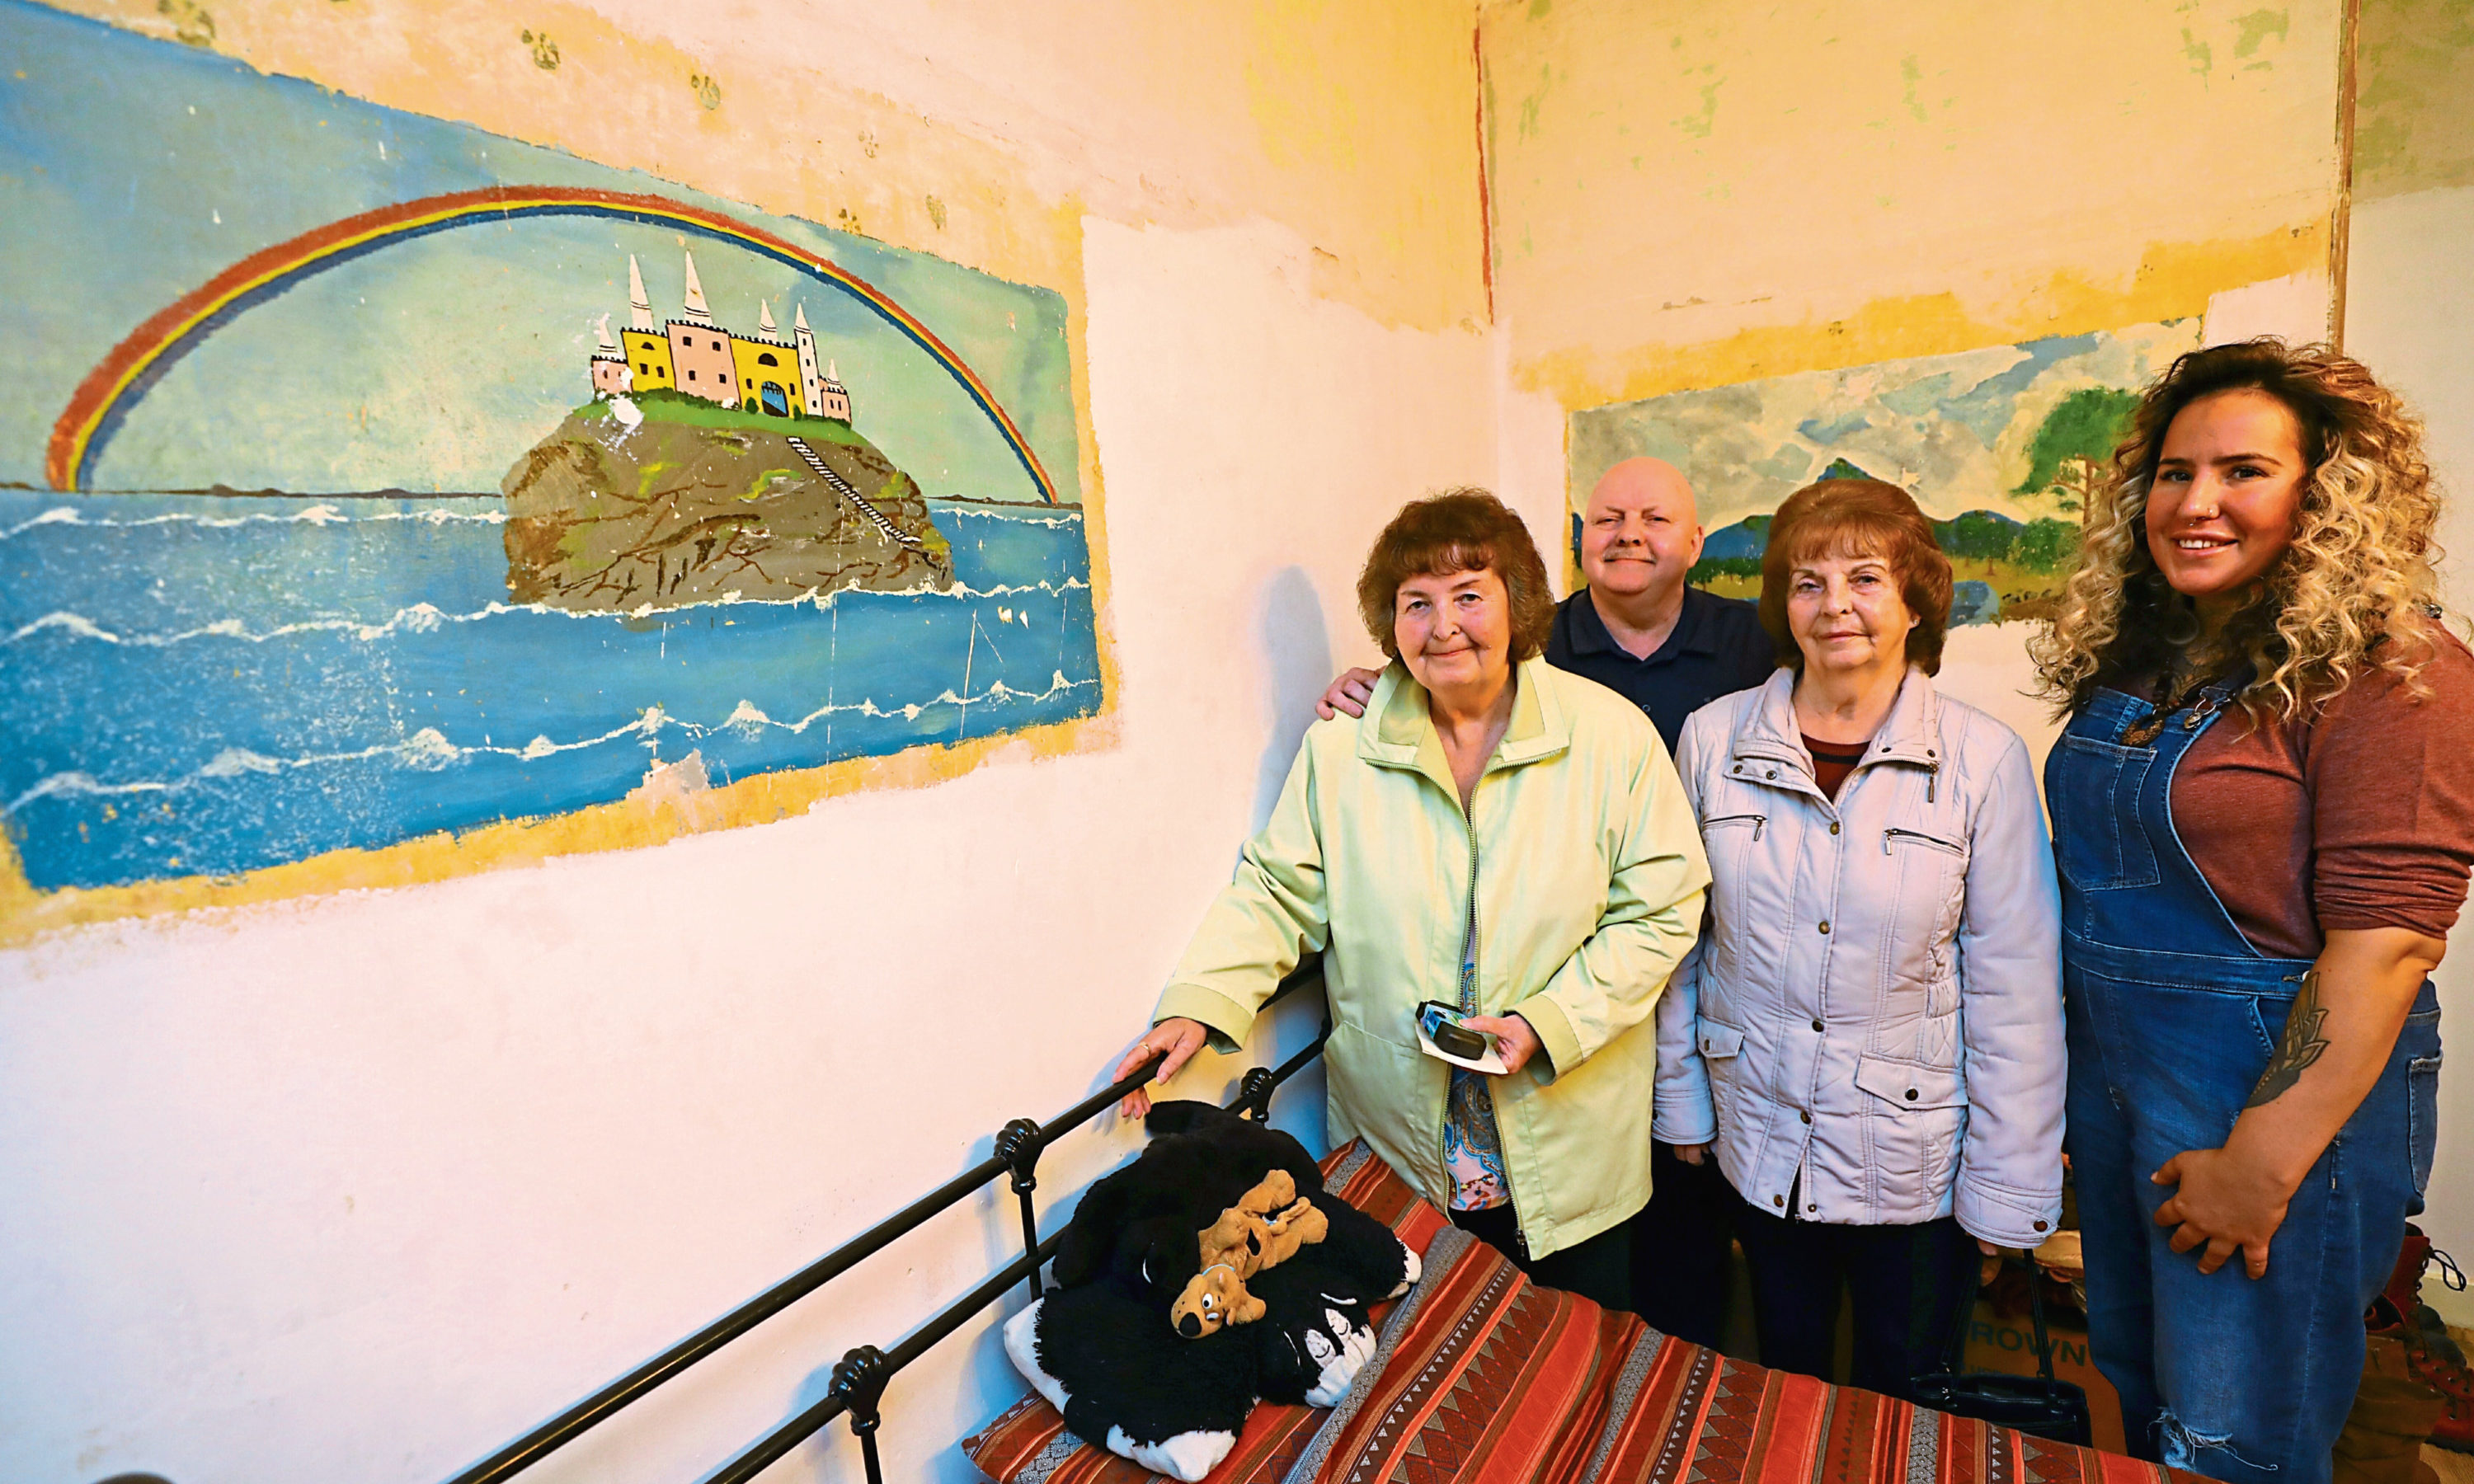 Benjamin Hutton's family, from left, Catherine Andrews, Charles Hutton and Margaret McKee, with Sarah Graham, owner of the flat, beside the paintings on the wall.